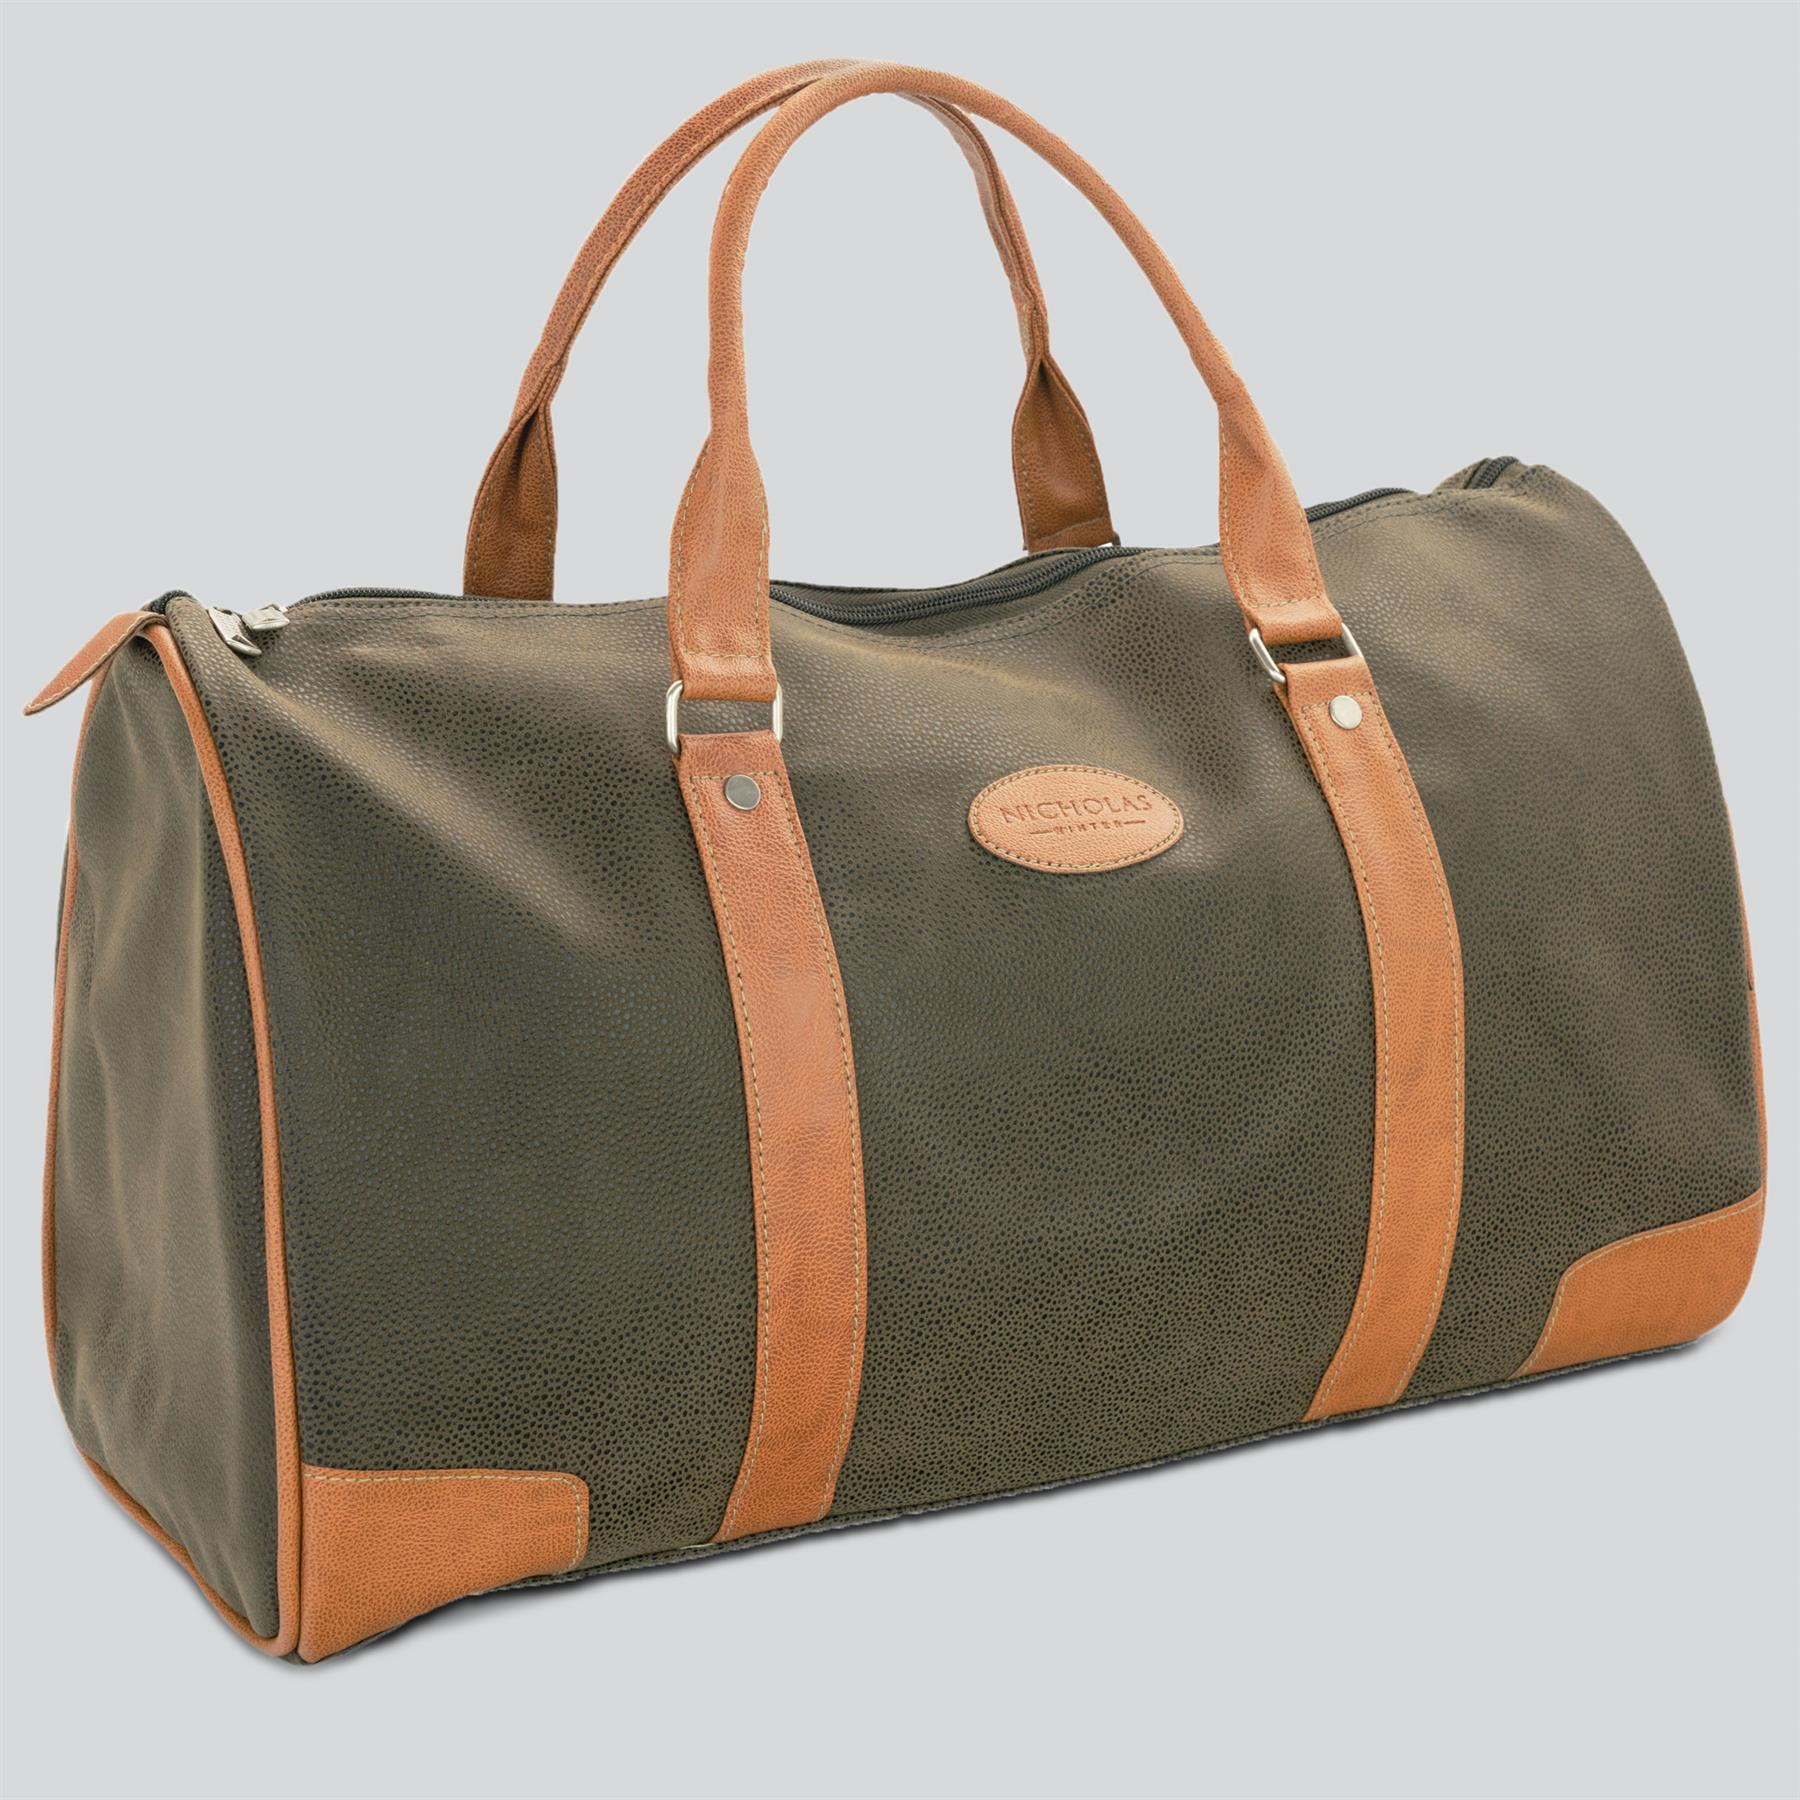 00a8bde1734 Details about Mens Travel Bag Holdall Weekend Overnight Leather Look Duffle  Khaki Medium